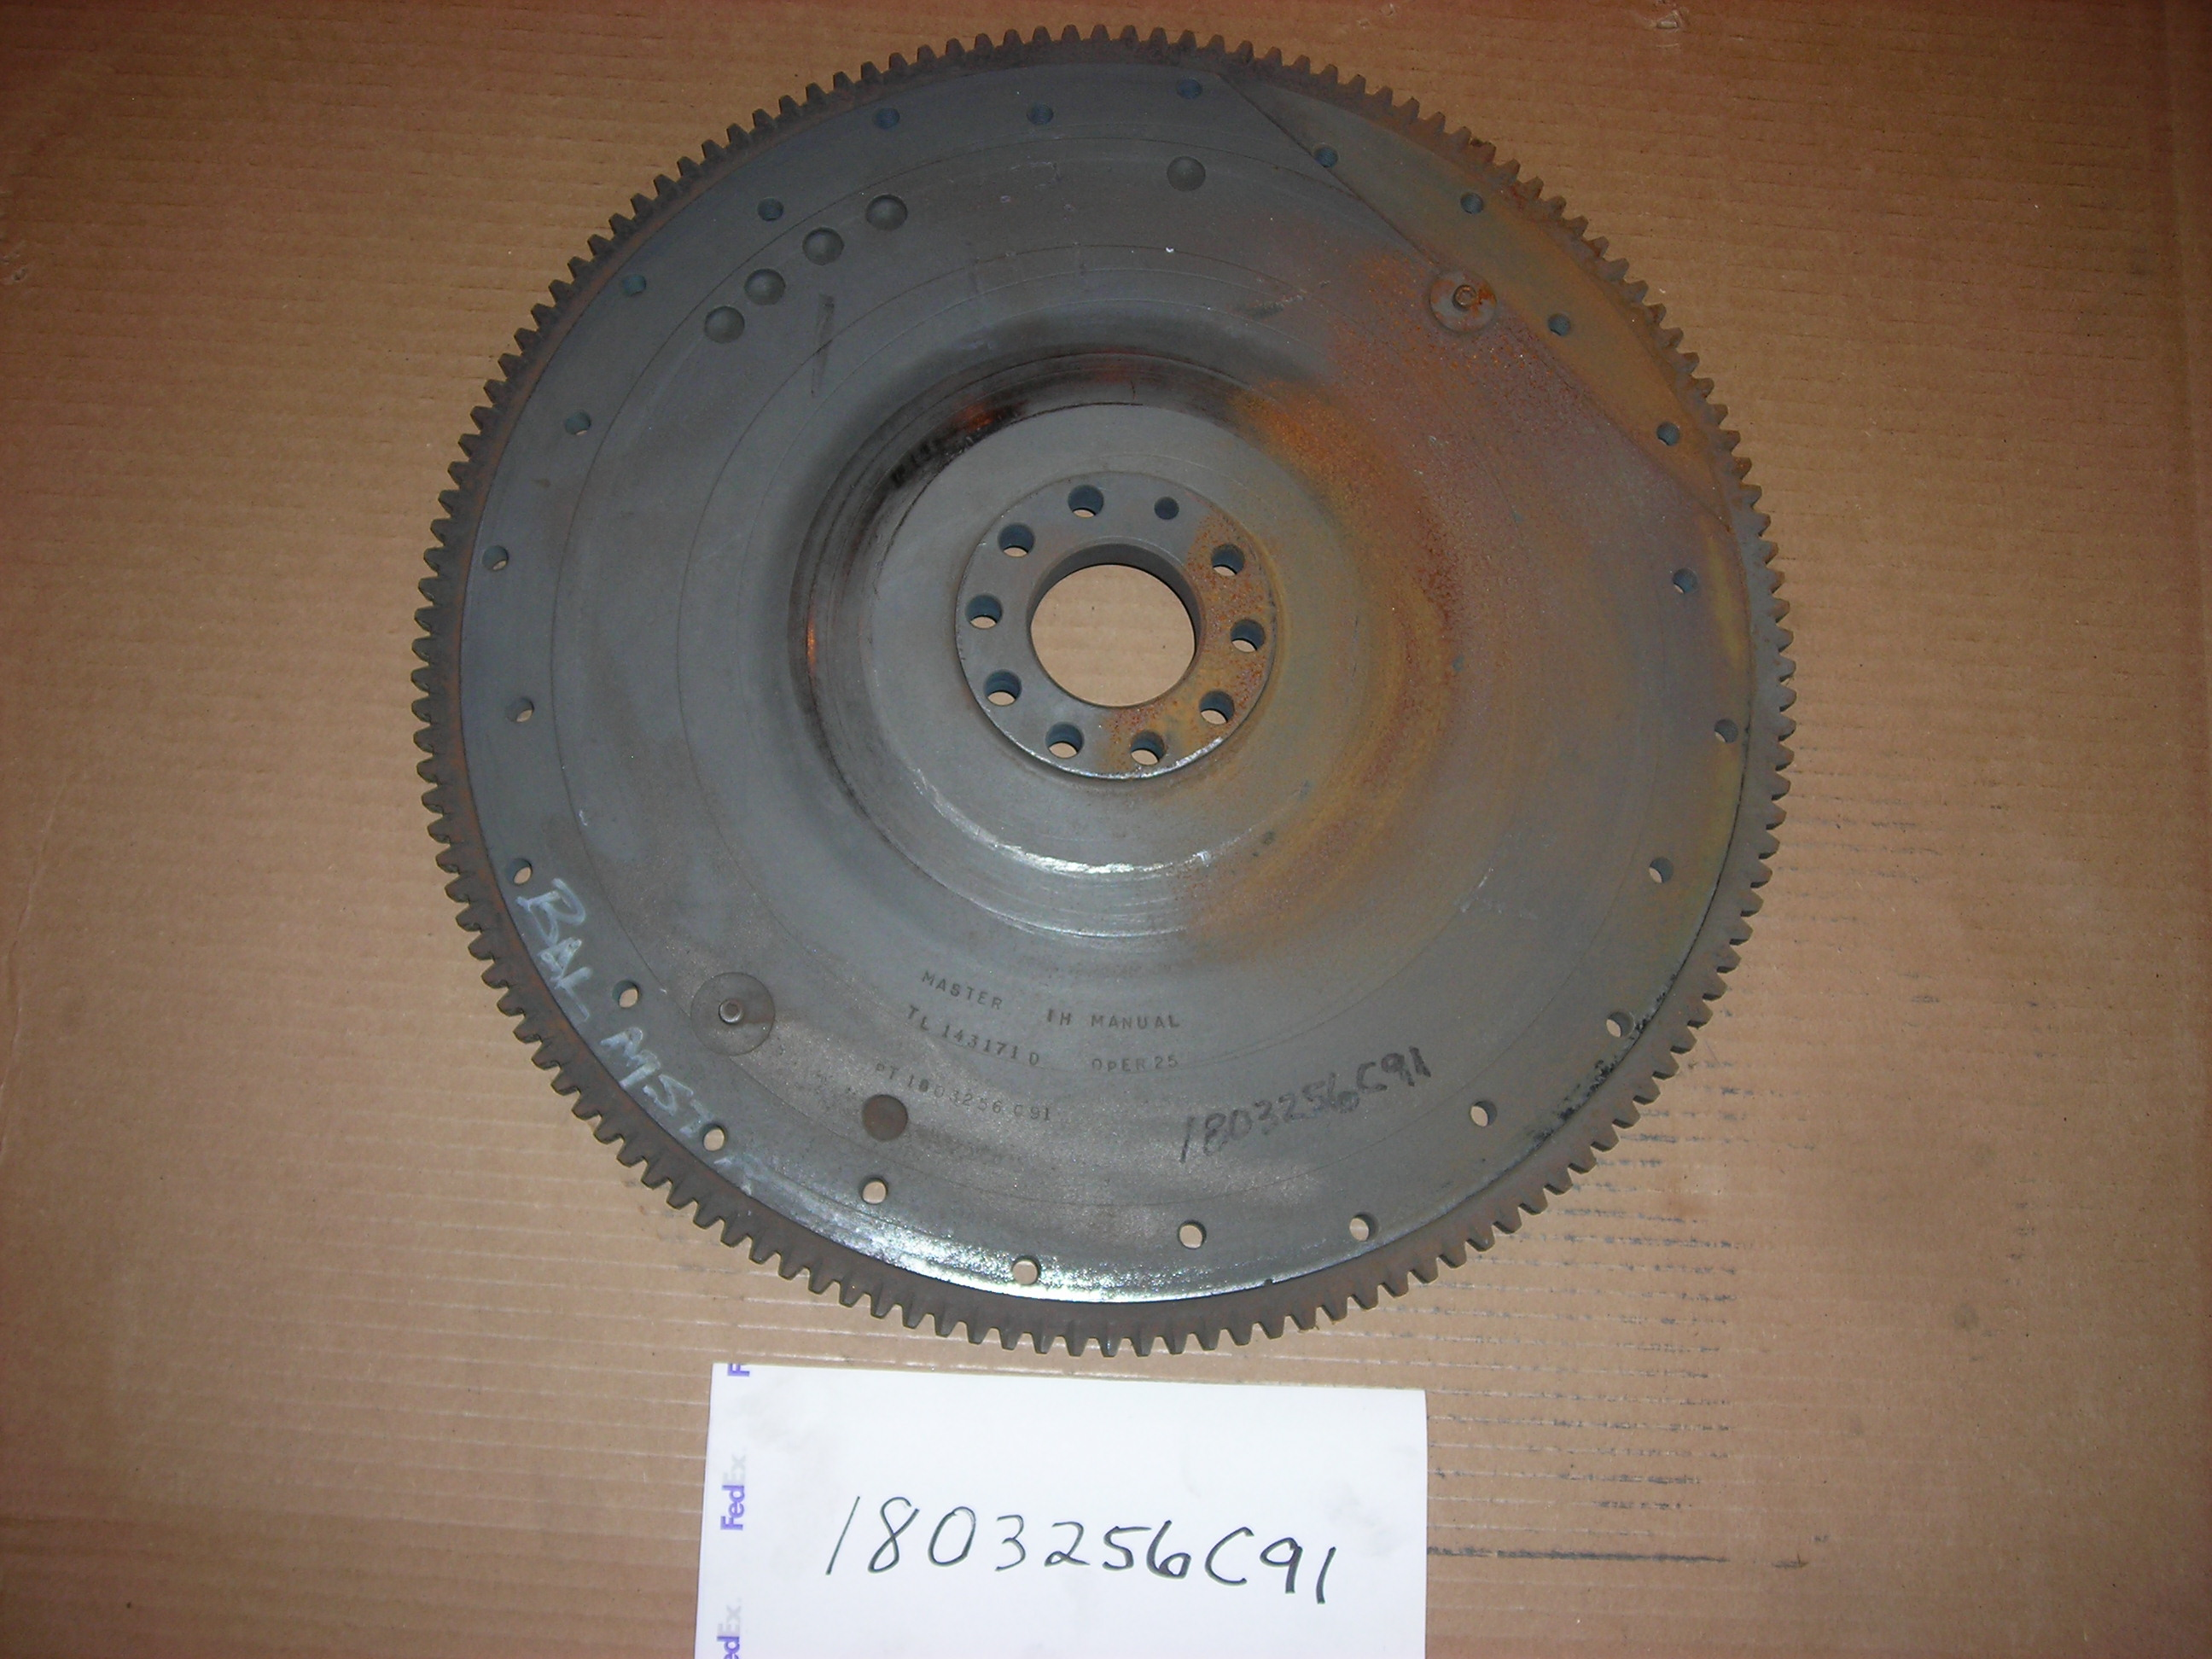 1803256C91 Navistar International Flywheel Rear